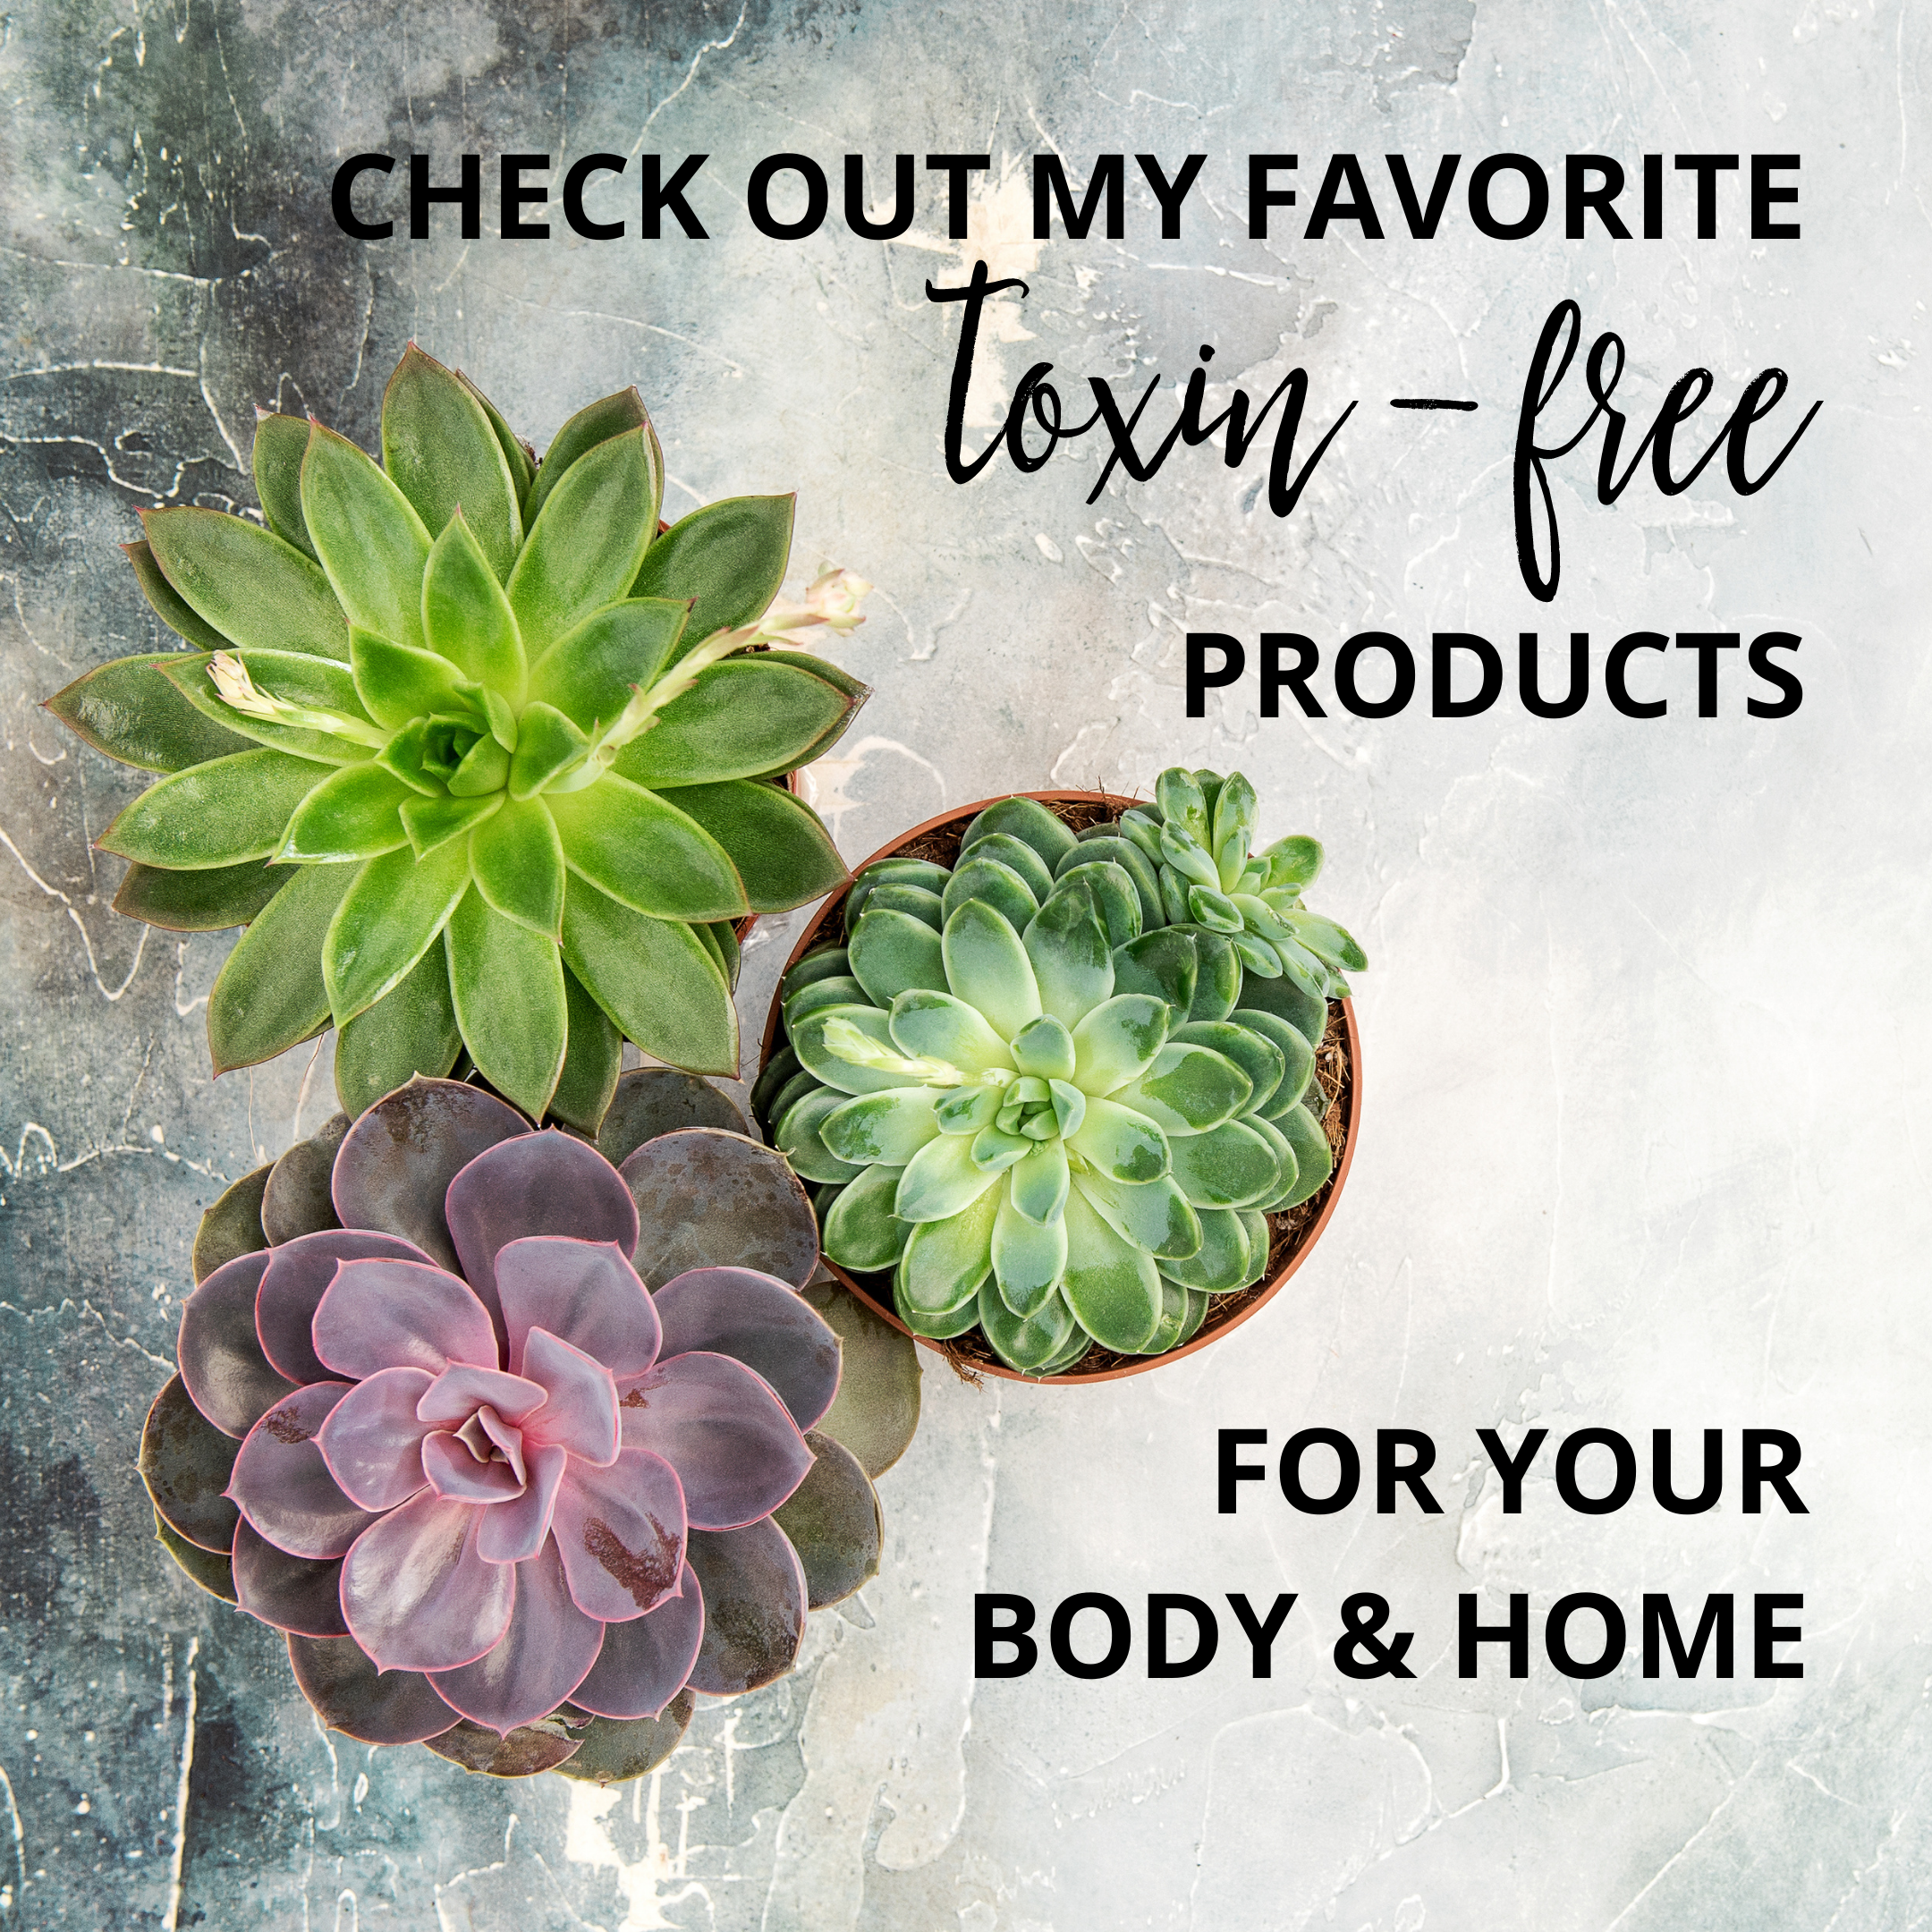 Check out some of my favorite toxin-free products for your body and home!